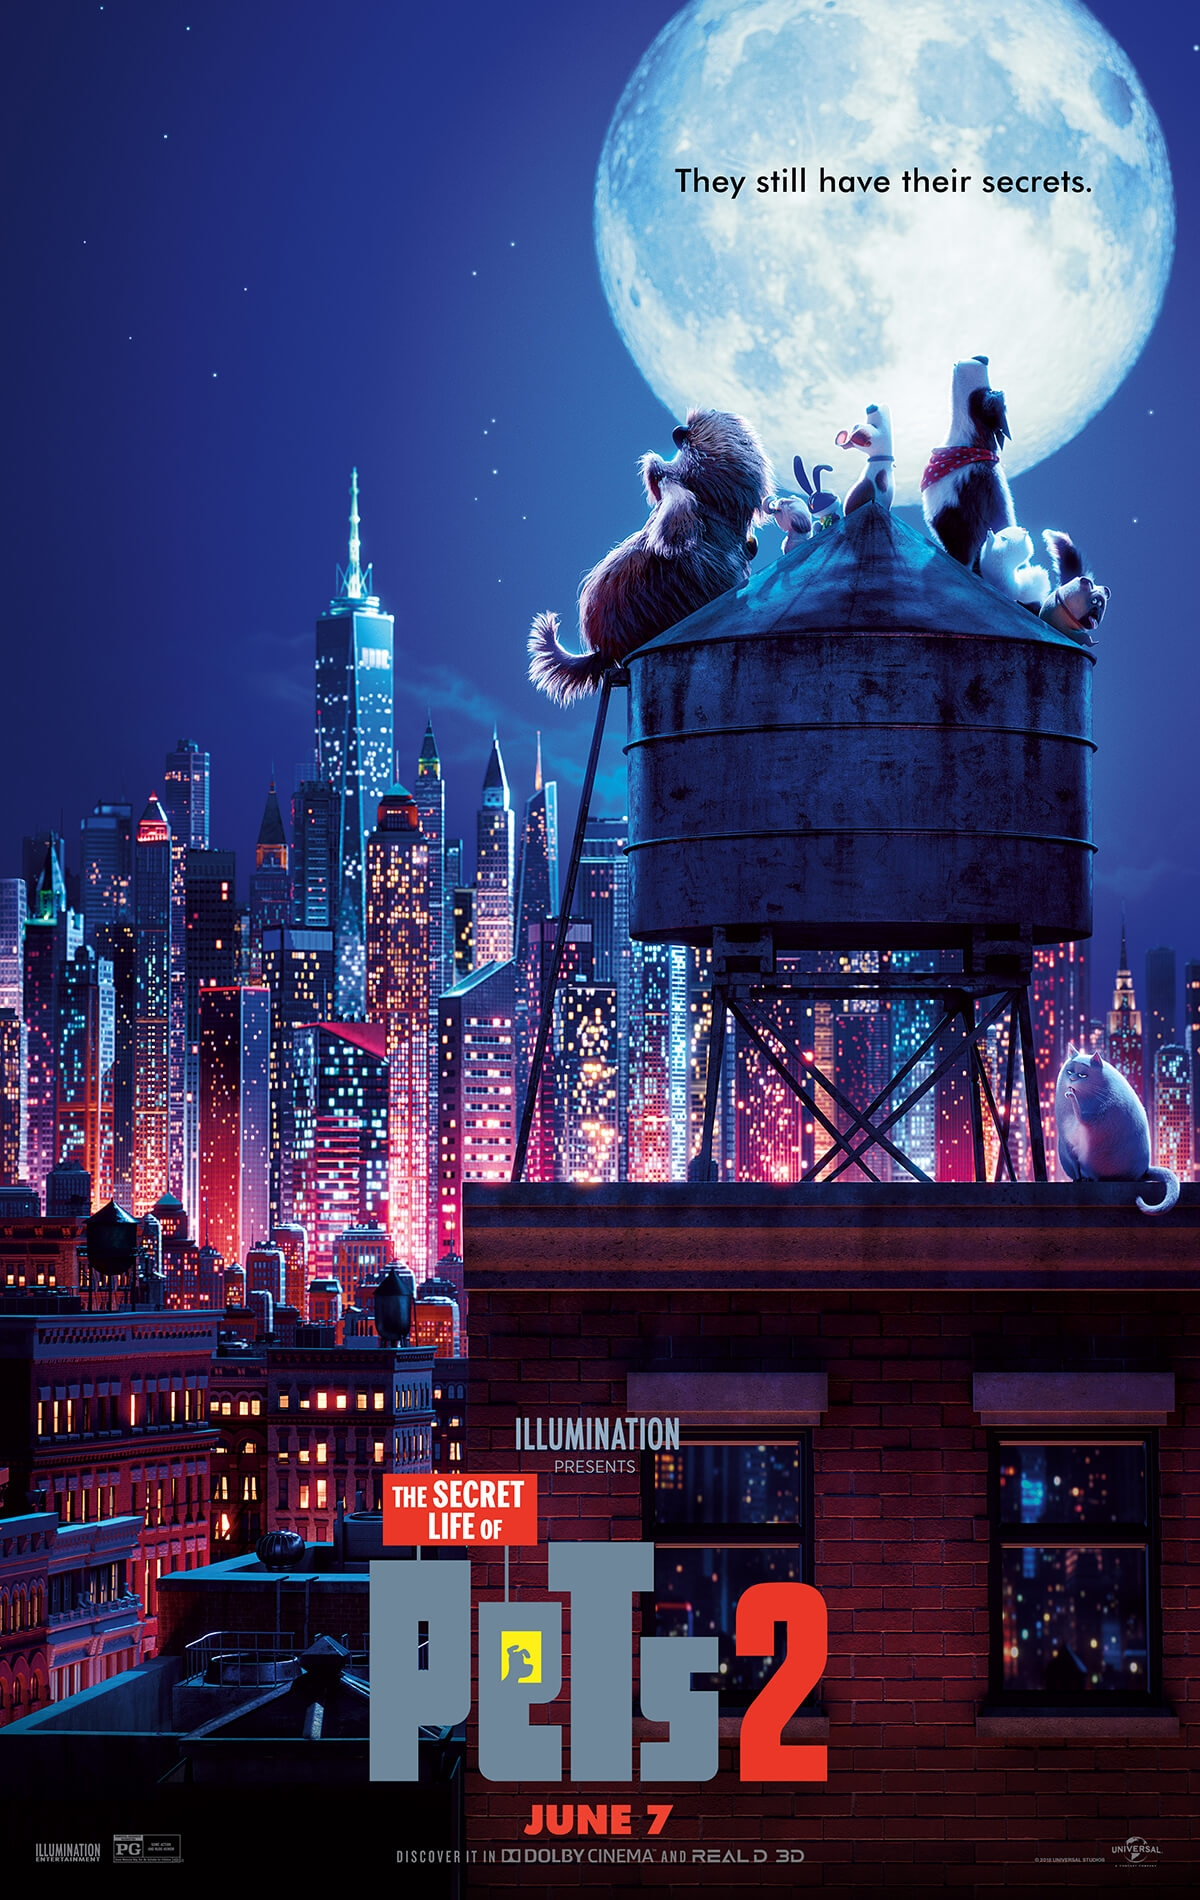 The Secret Life of Pets 2 - Poster 1